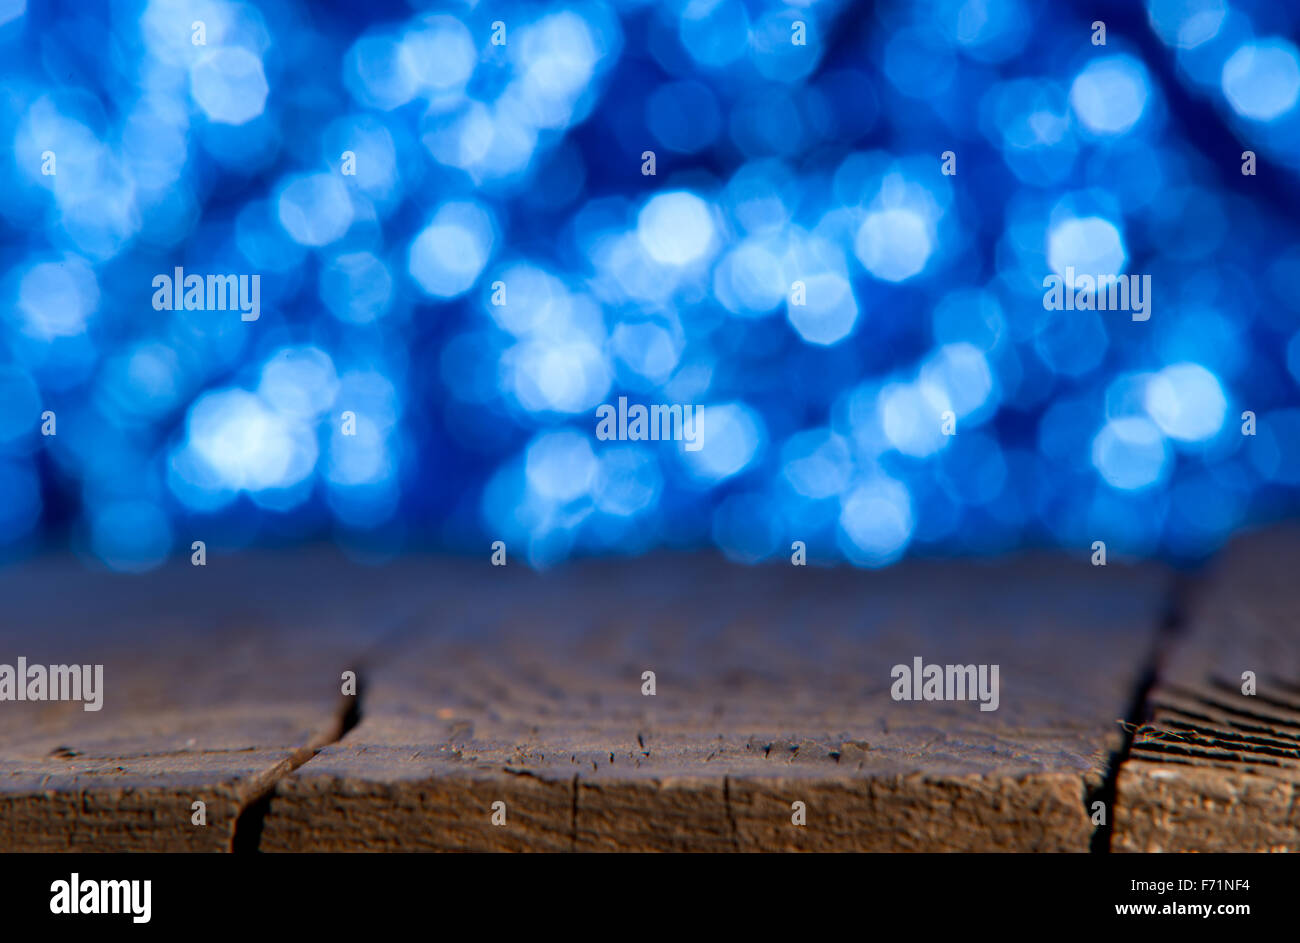 blue unfocused background with old wooden table - Stock Image